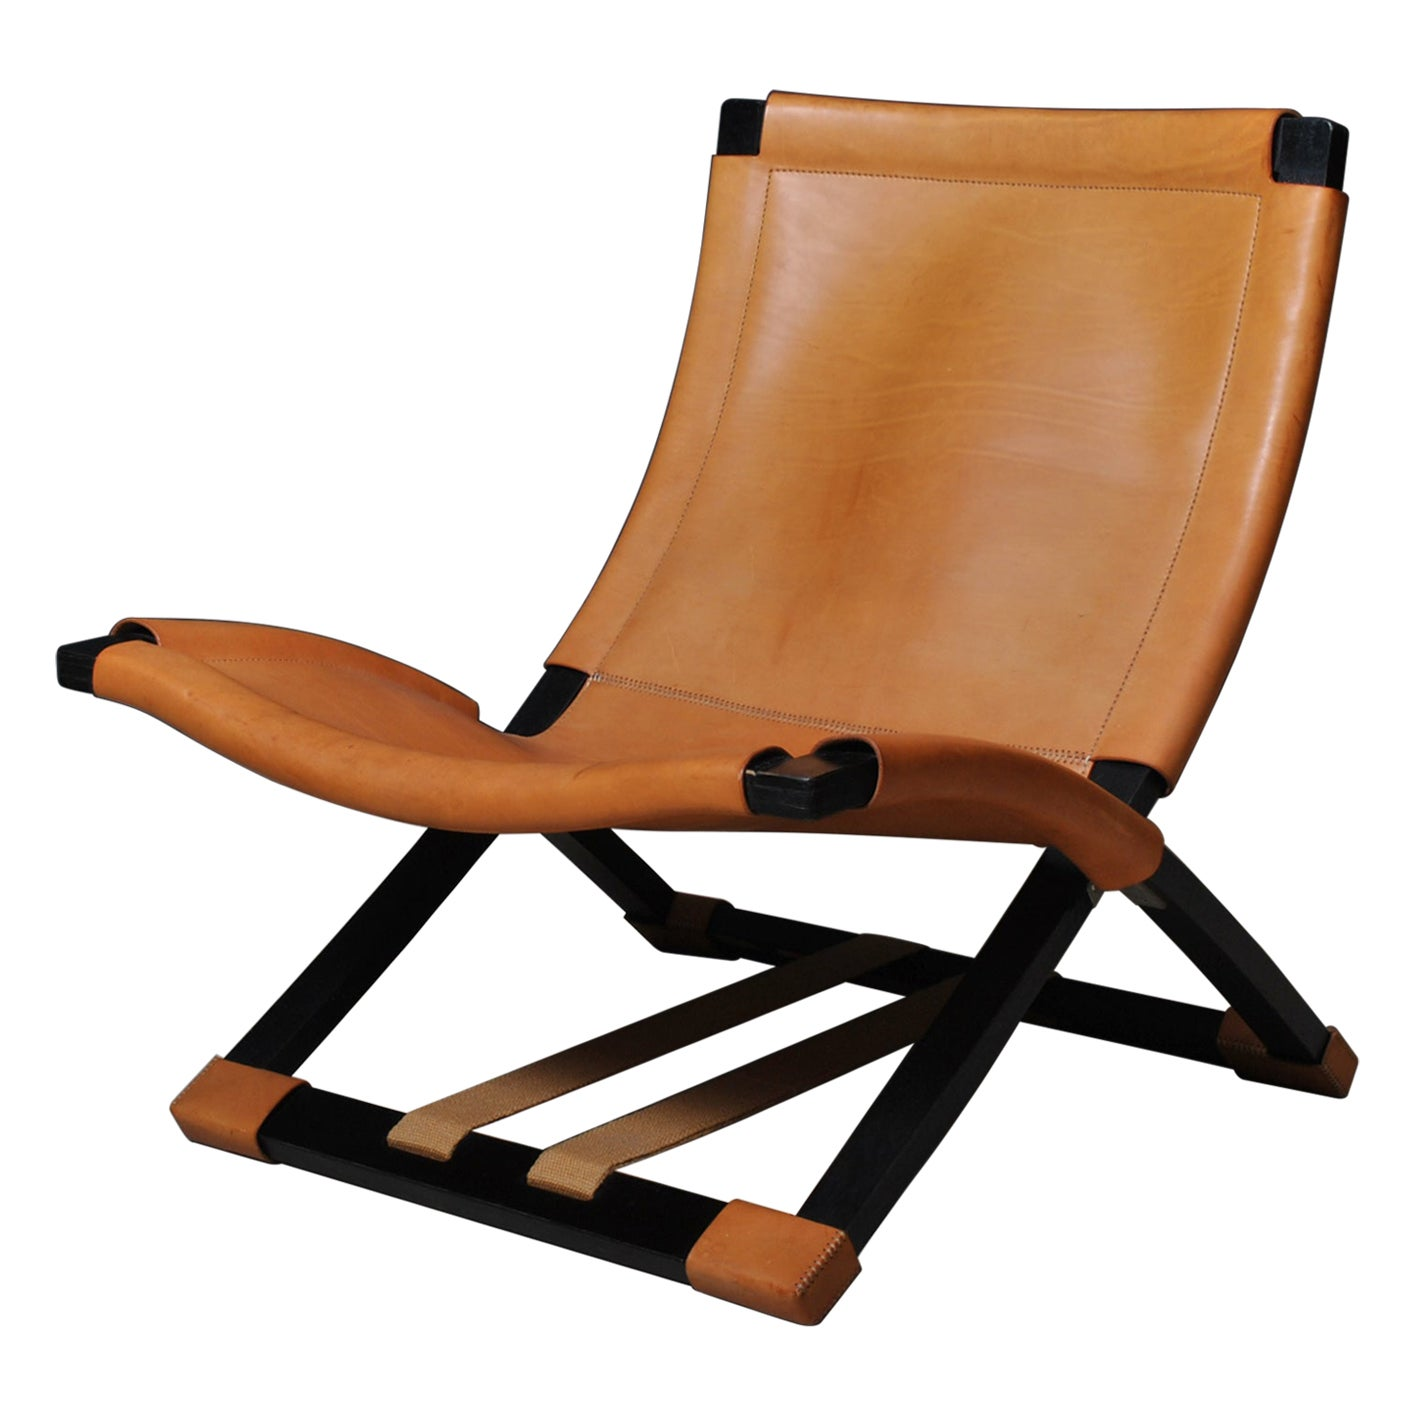 Nordic Leather X Chairs, Ingmar Relling